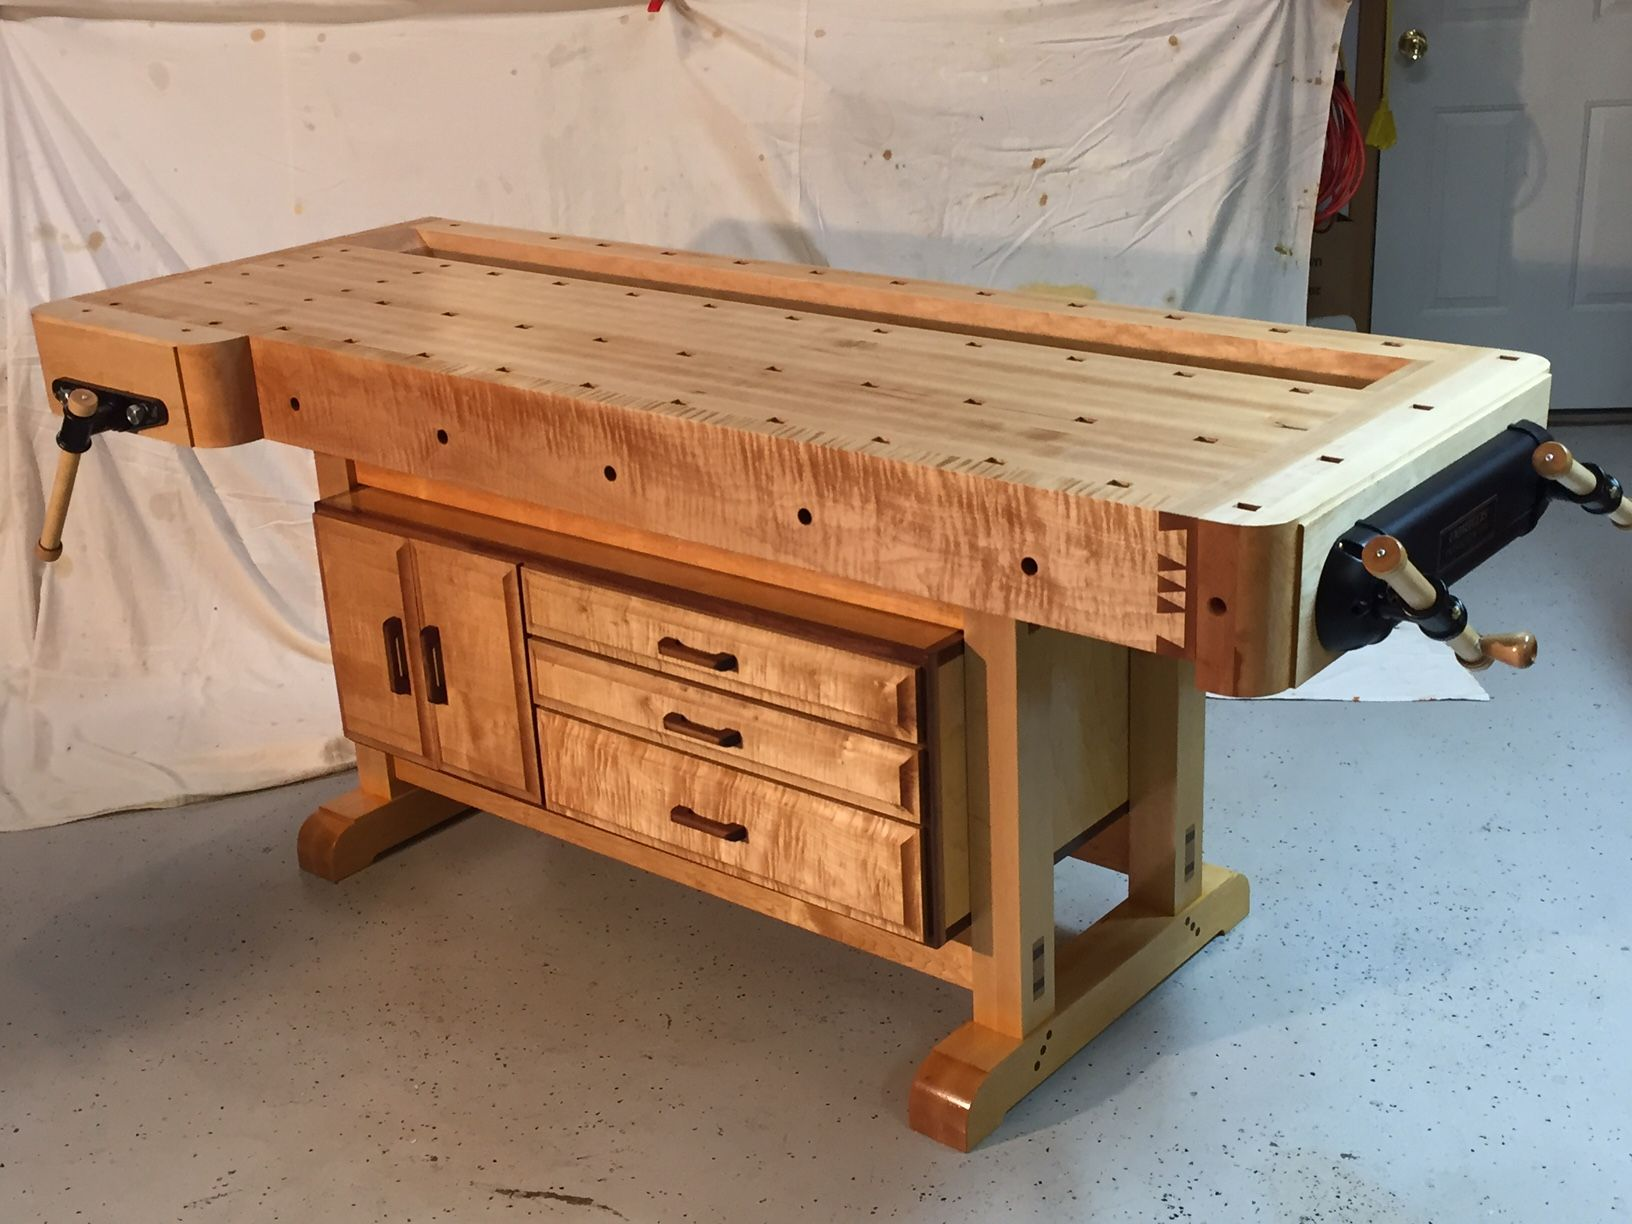 hight resolution of woodworking vice woodworking shop layout woodworking workbench workbench designs woodworking projects